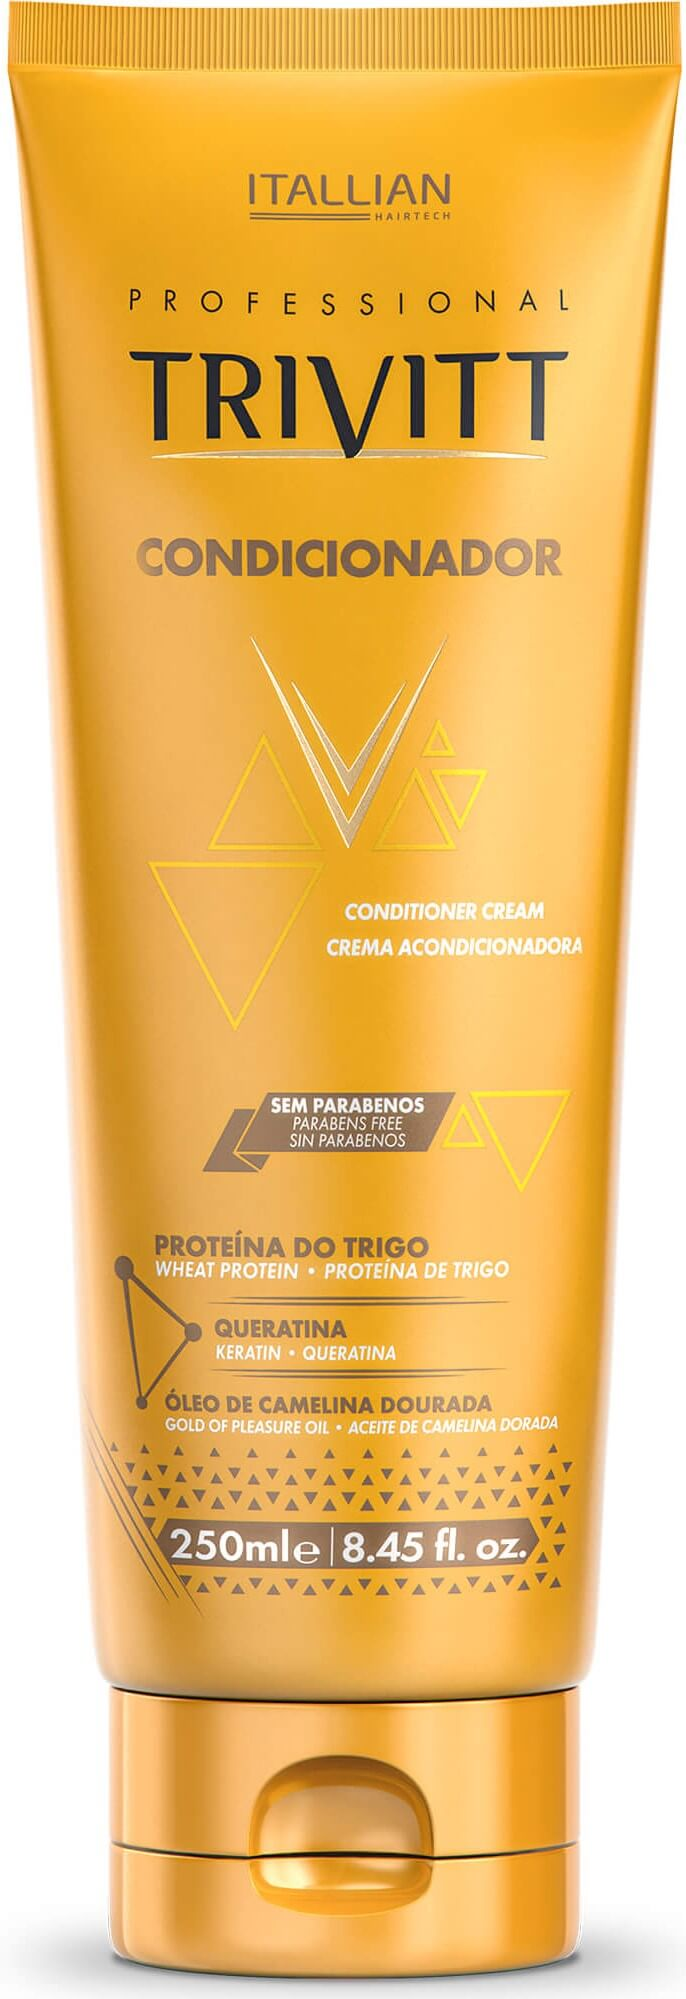 Condicionador Itallian Trivitt - 250ml